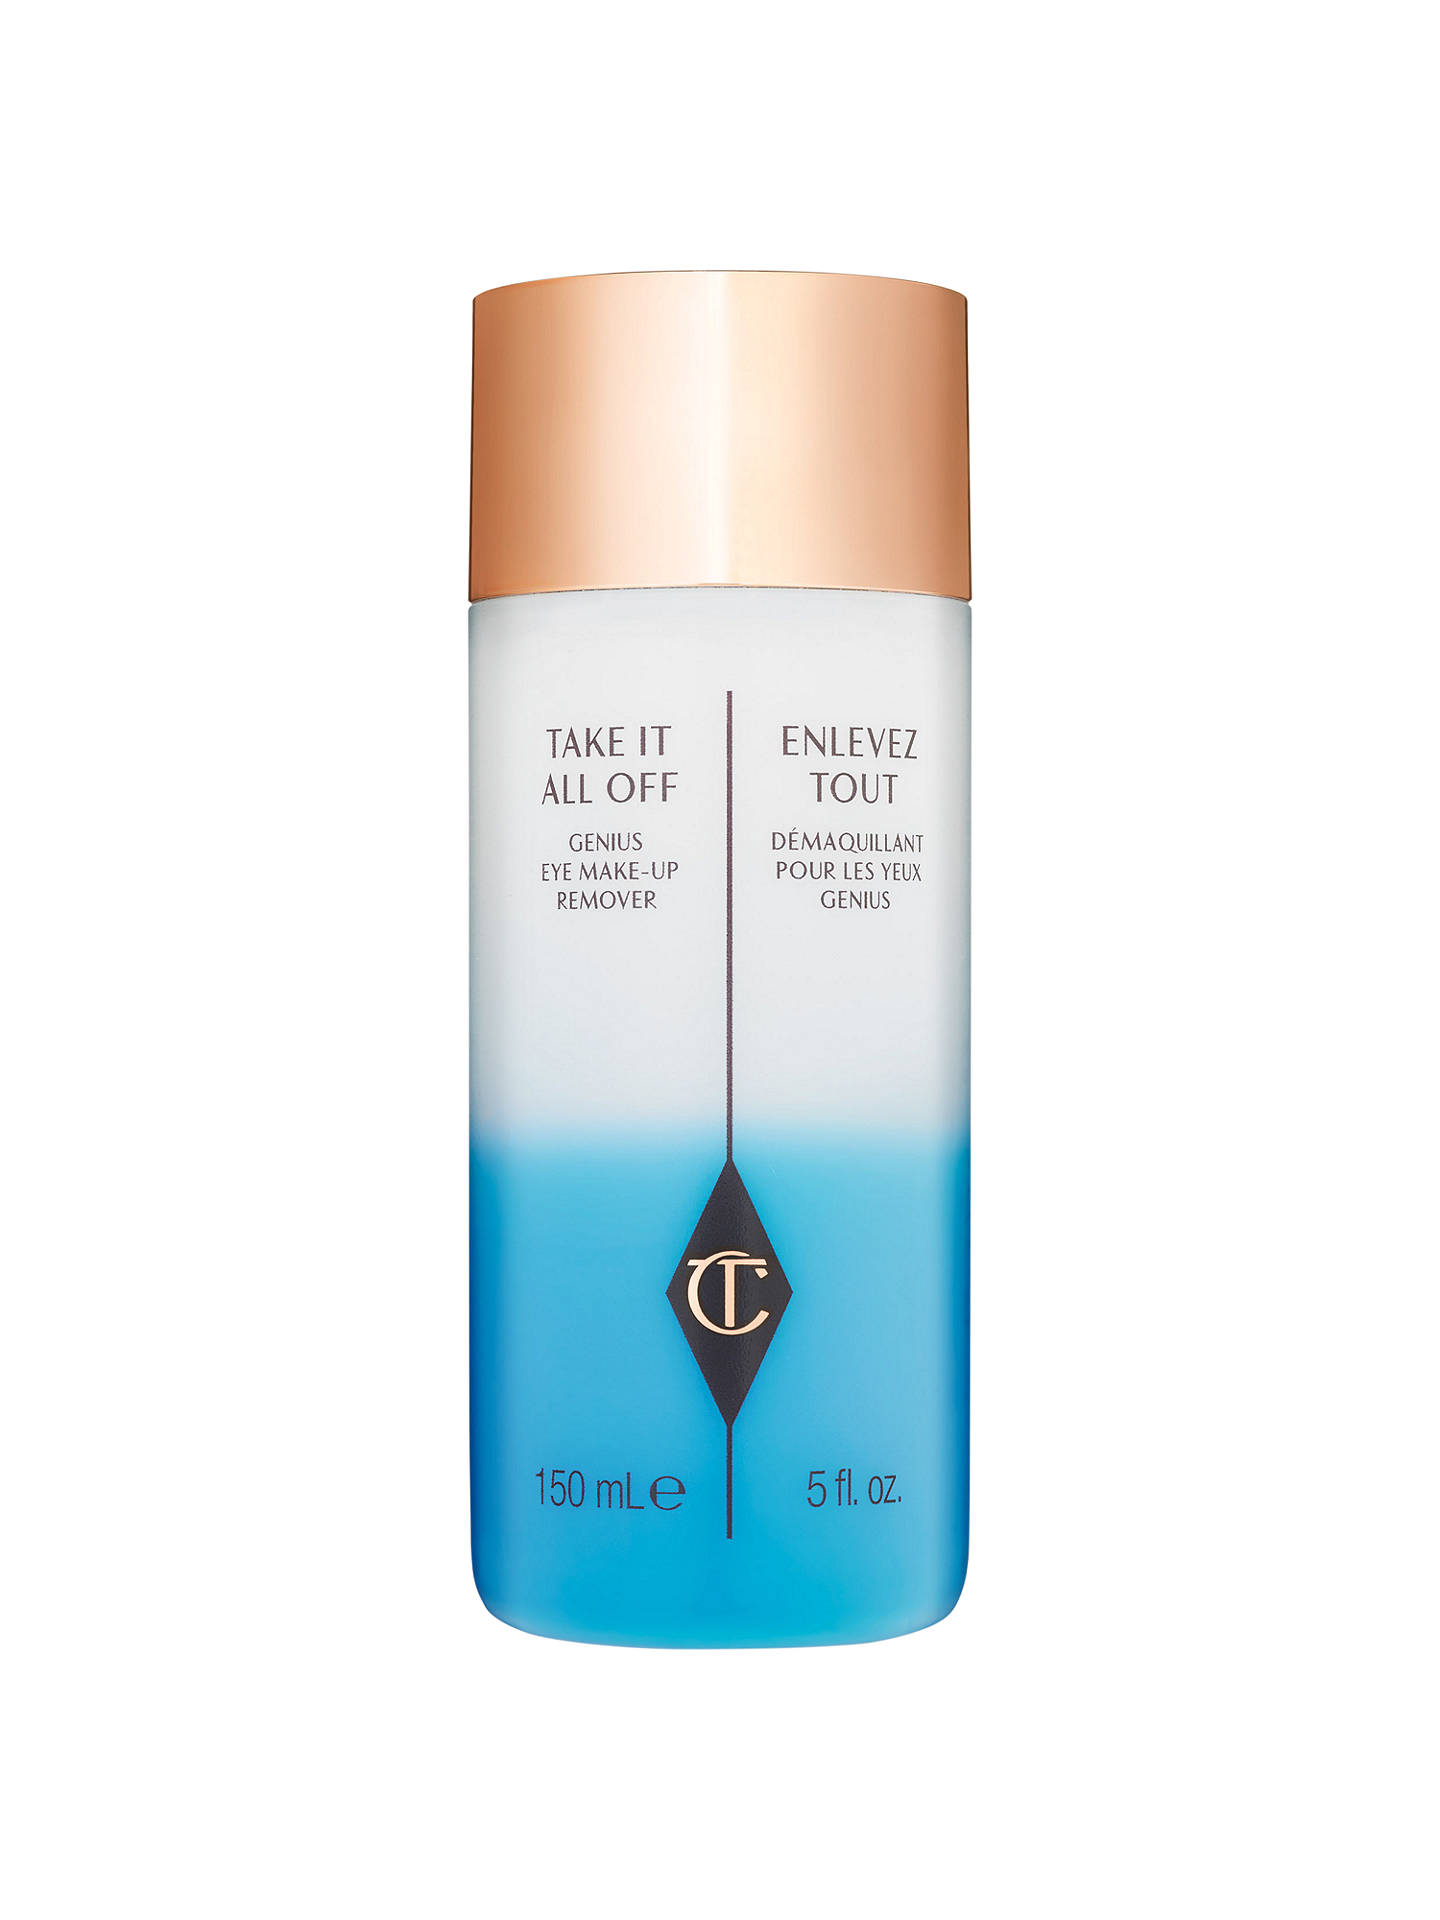 BuyCharlotte Tilbury Take It All Off Genius Eye Makeup Remover, 150ml Online at johnlewis.com